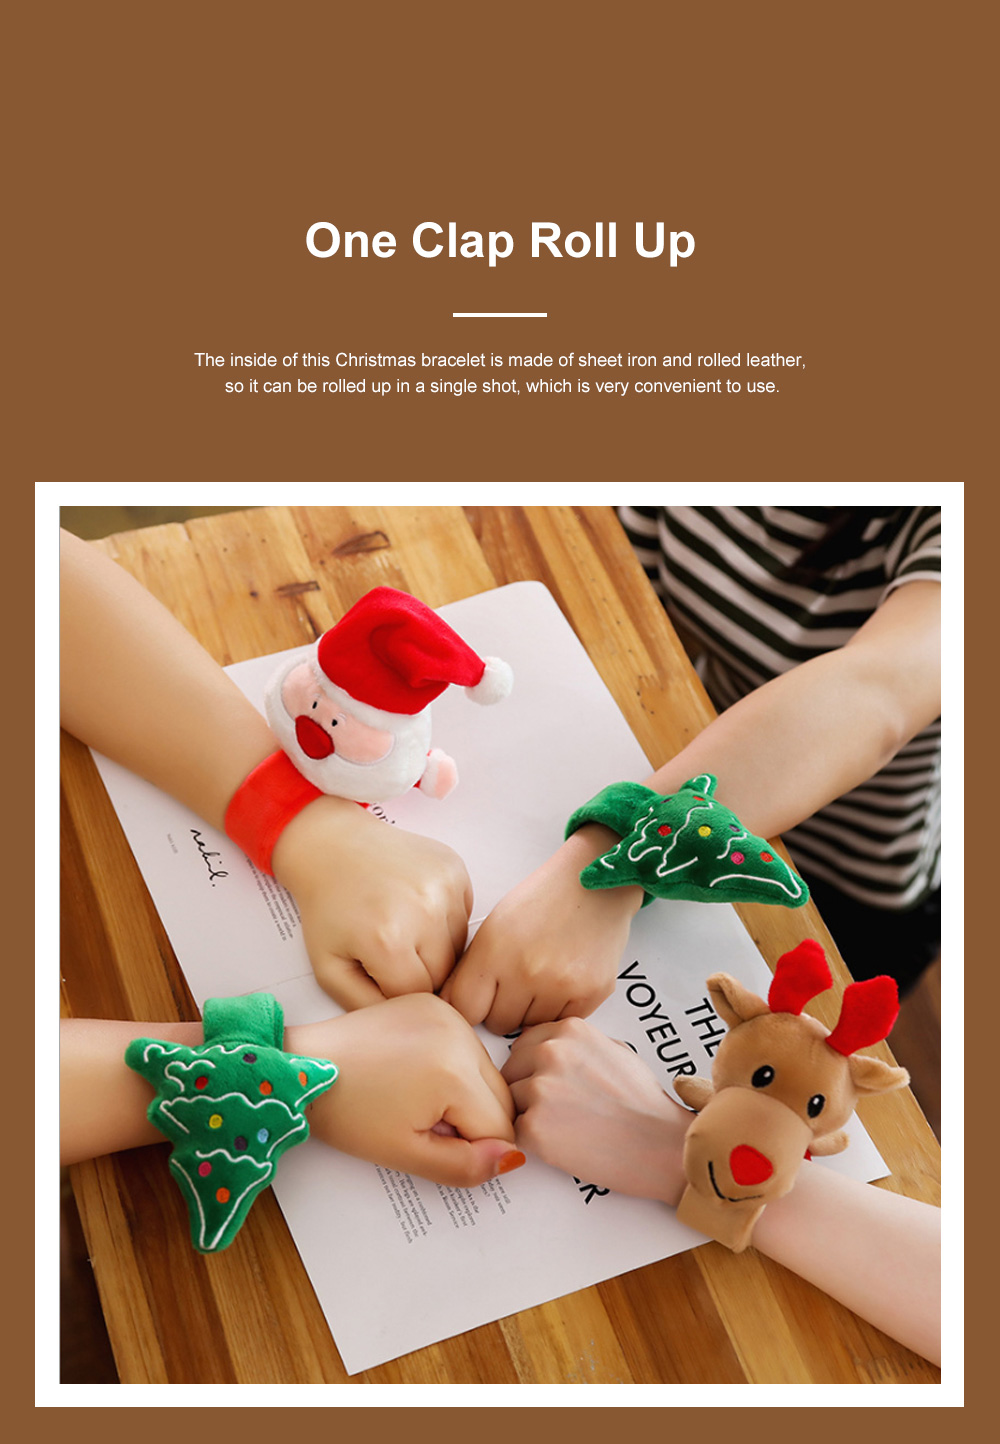 Christmas Decorations Elk Clapping Circle Children Creative Clapping Bracelet Santa Claus Clapping Circle 2